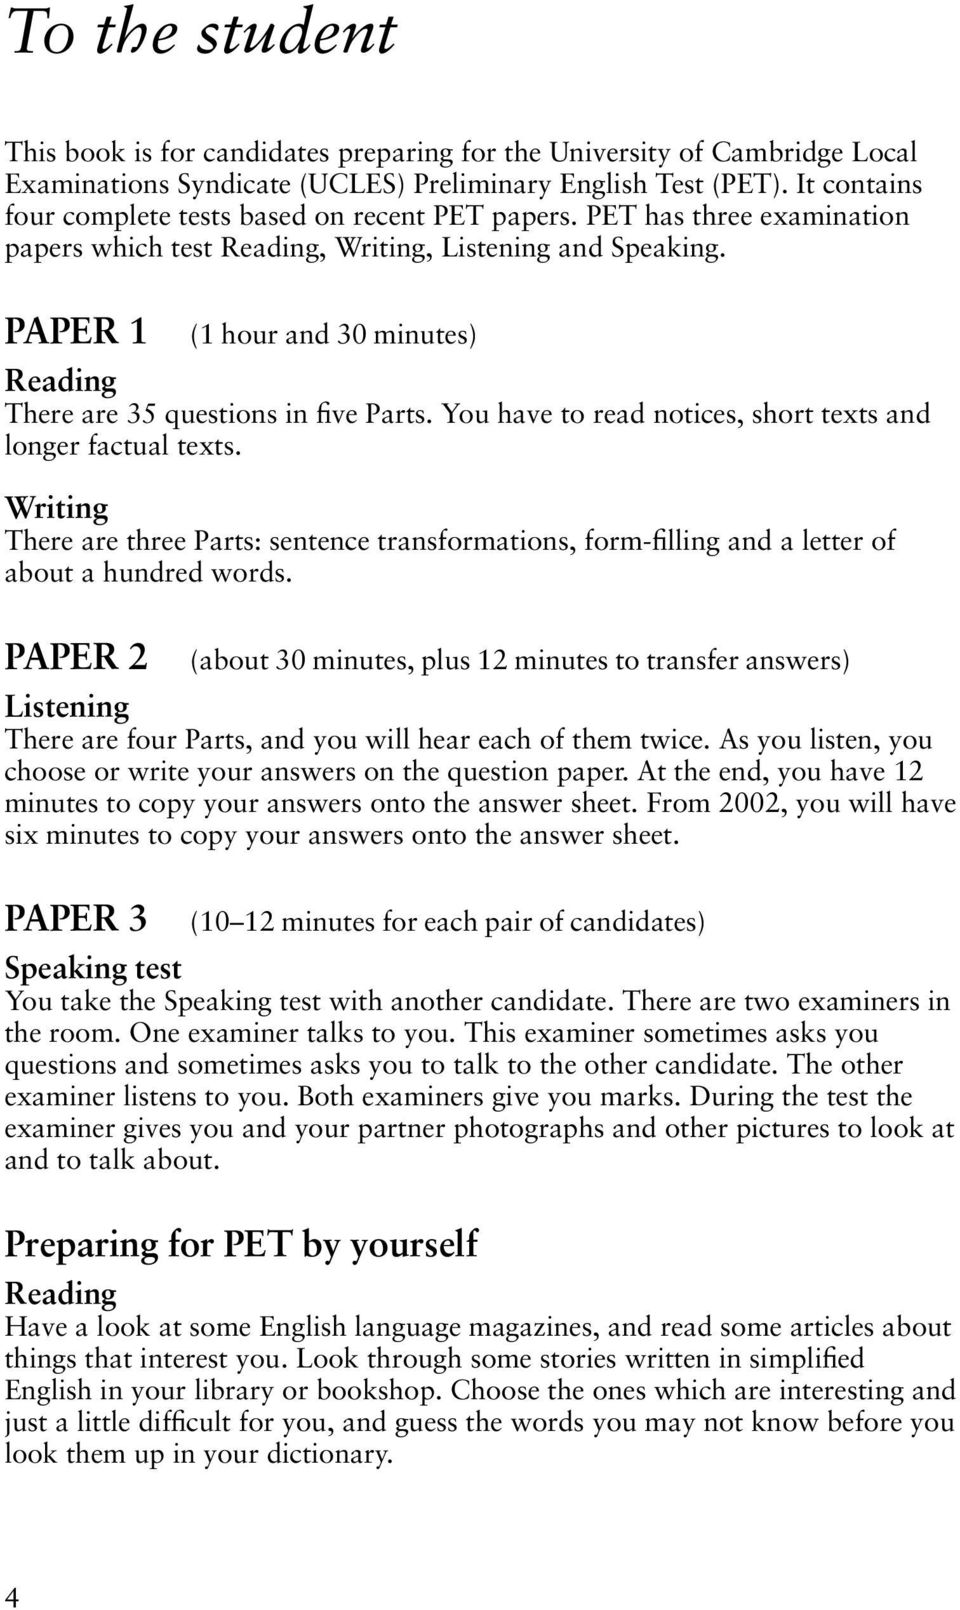 Form 2 English Exam Paper With Answer